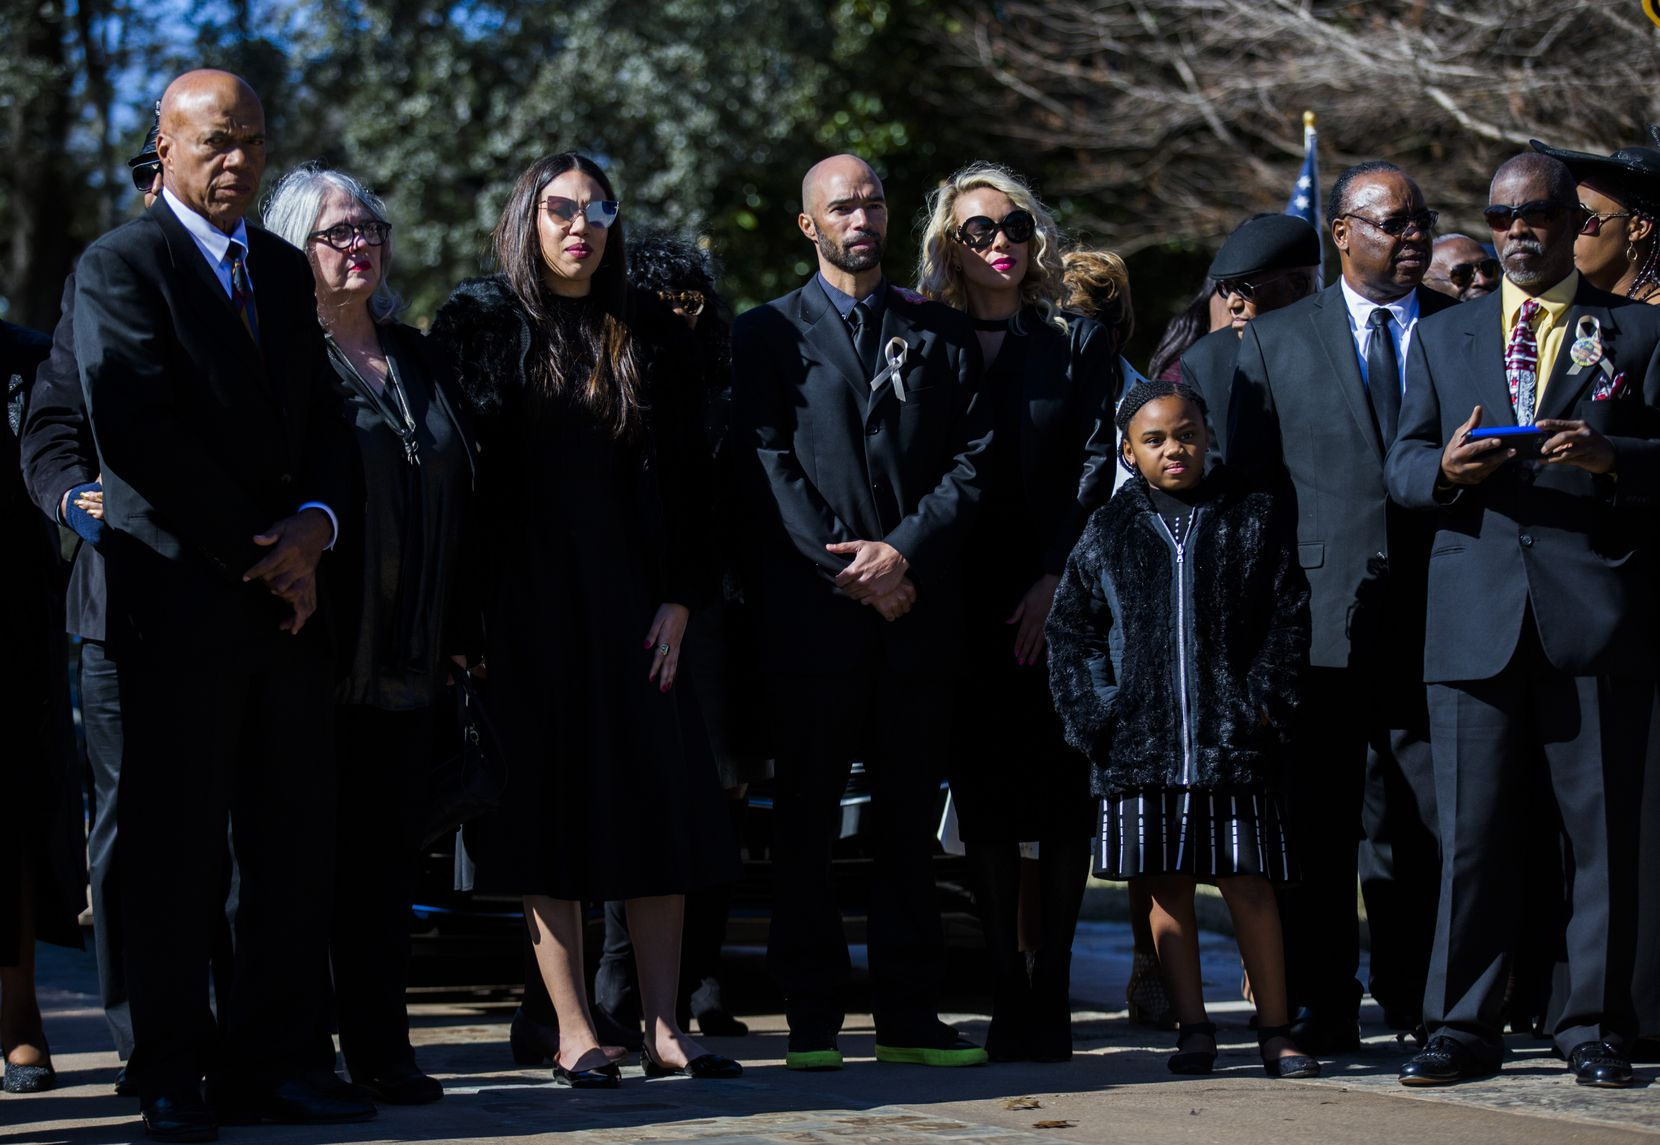 Family members wait as the remains of Richard Overton are transported to his grave site during a graveside service.